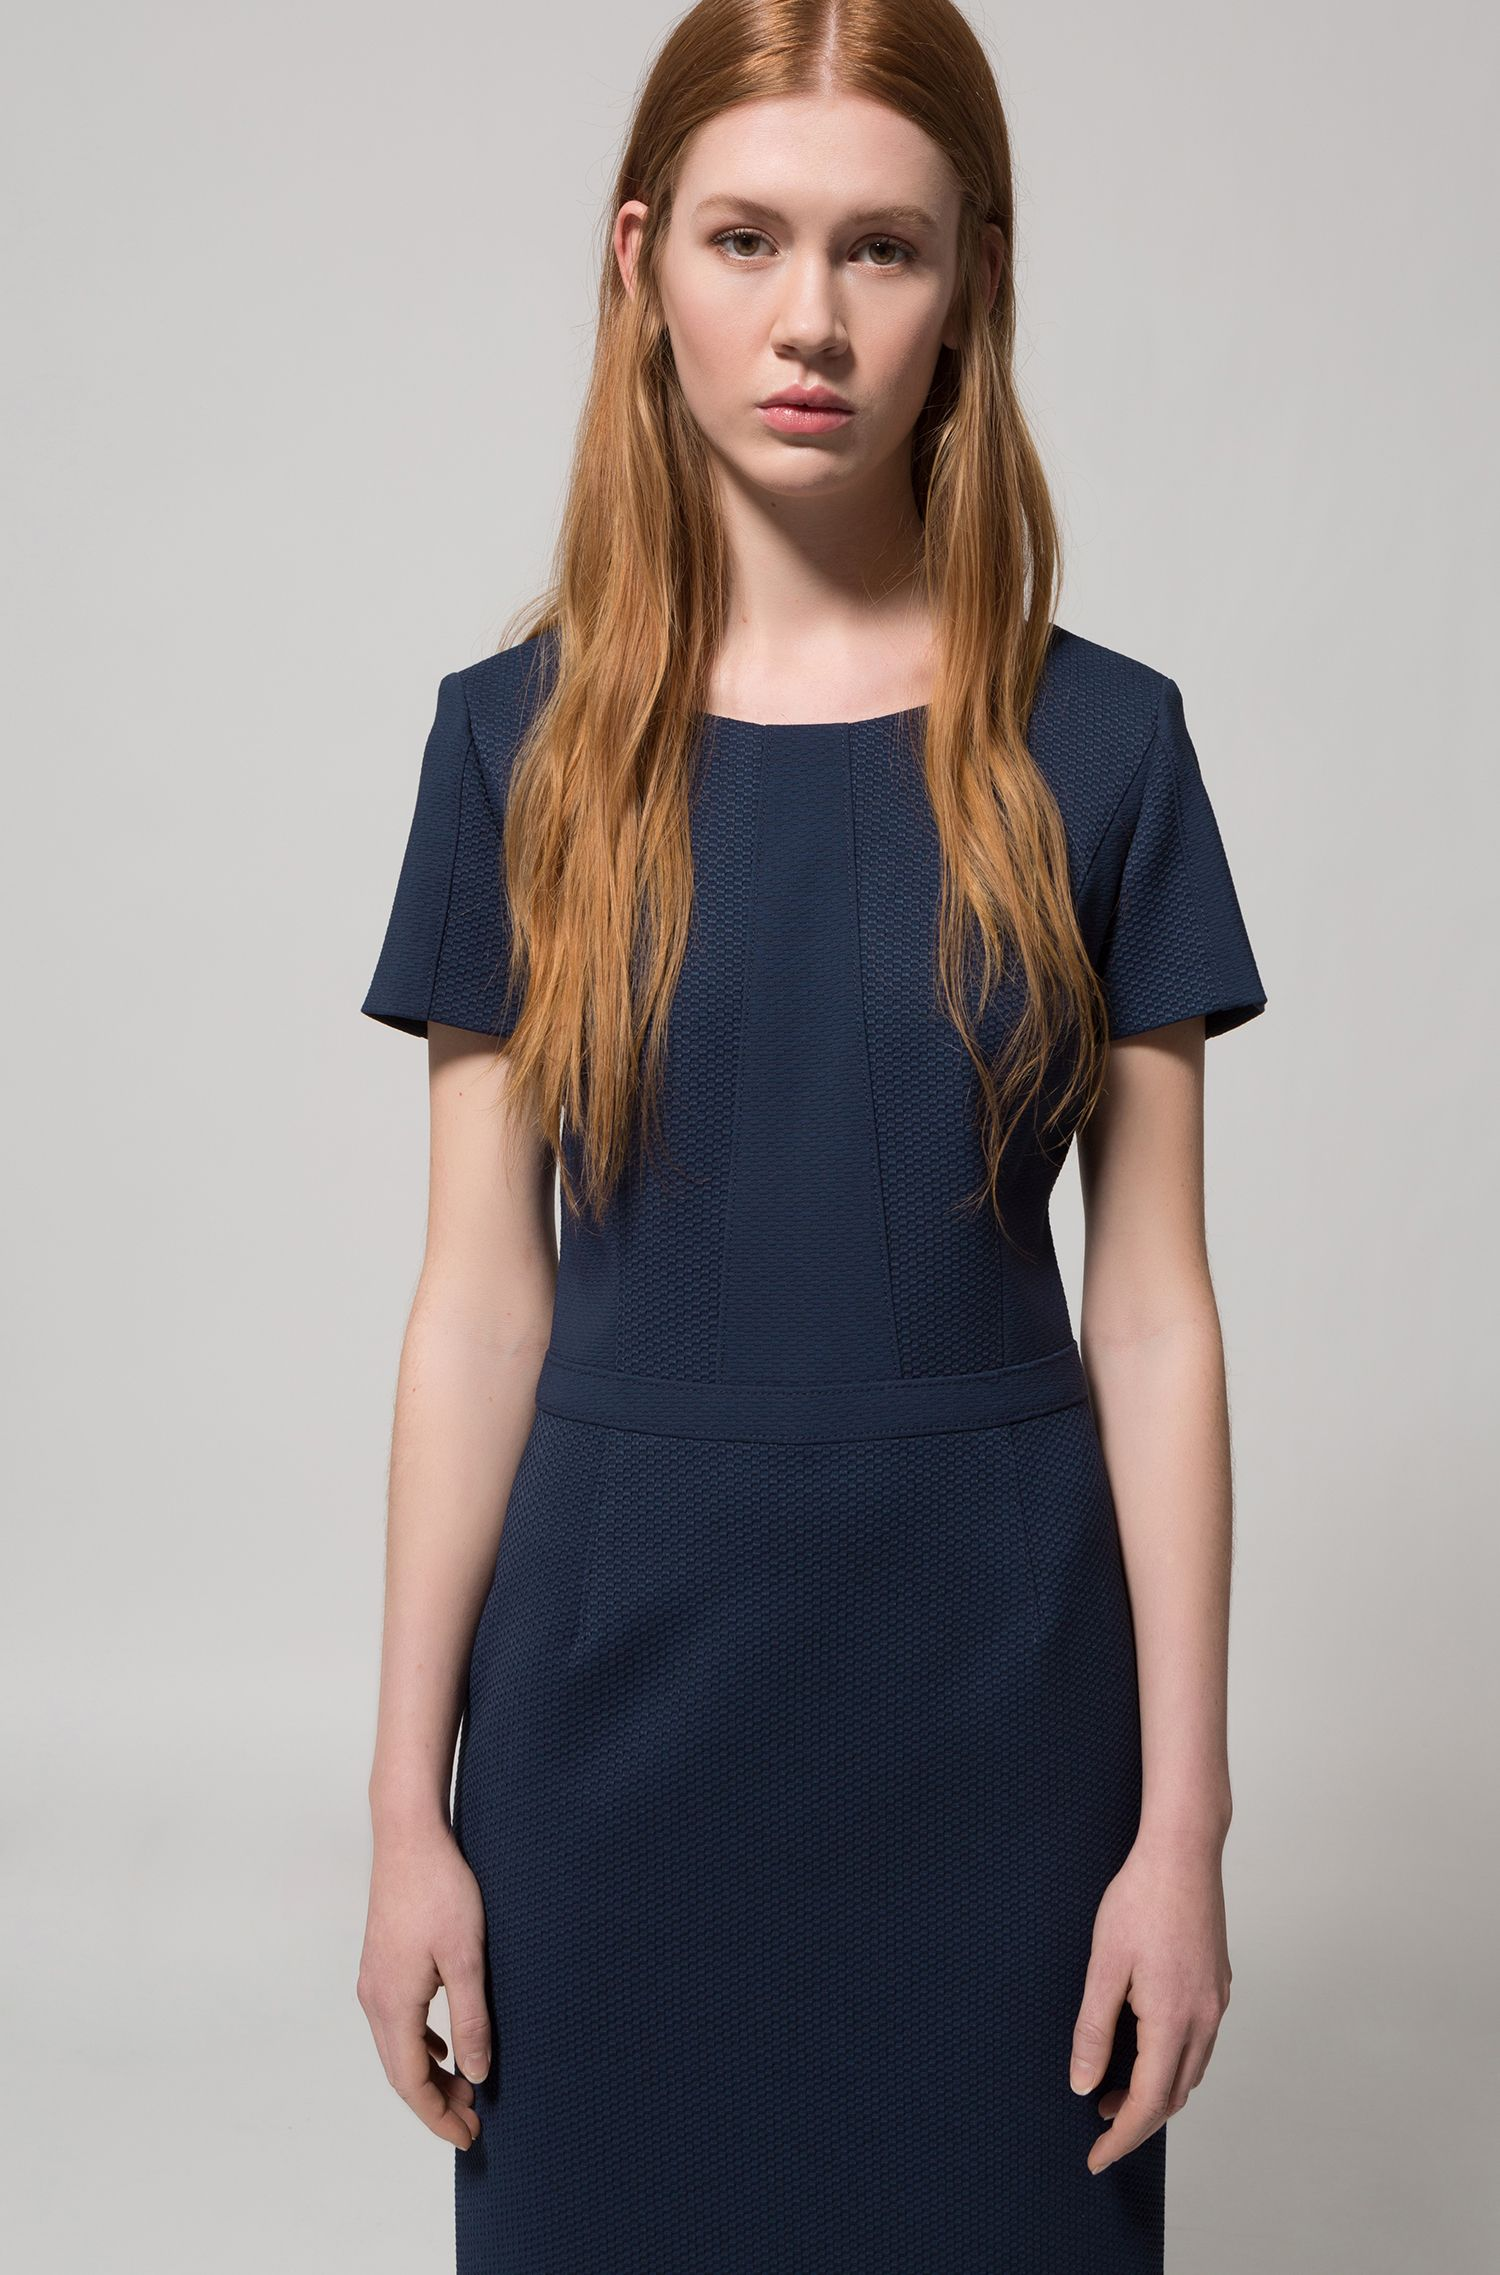 Short-sleeved dress in panelled stretch fabric